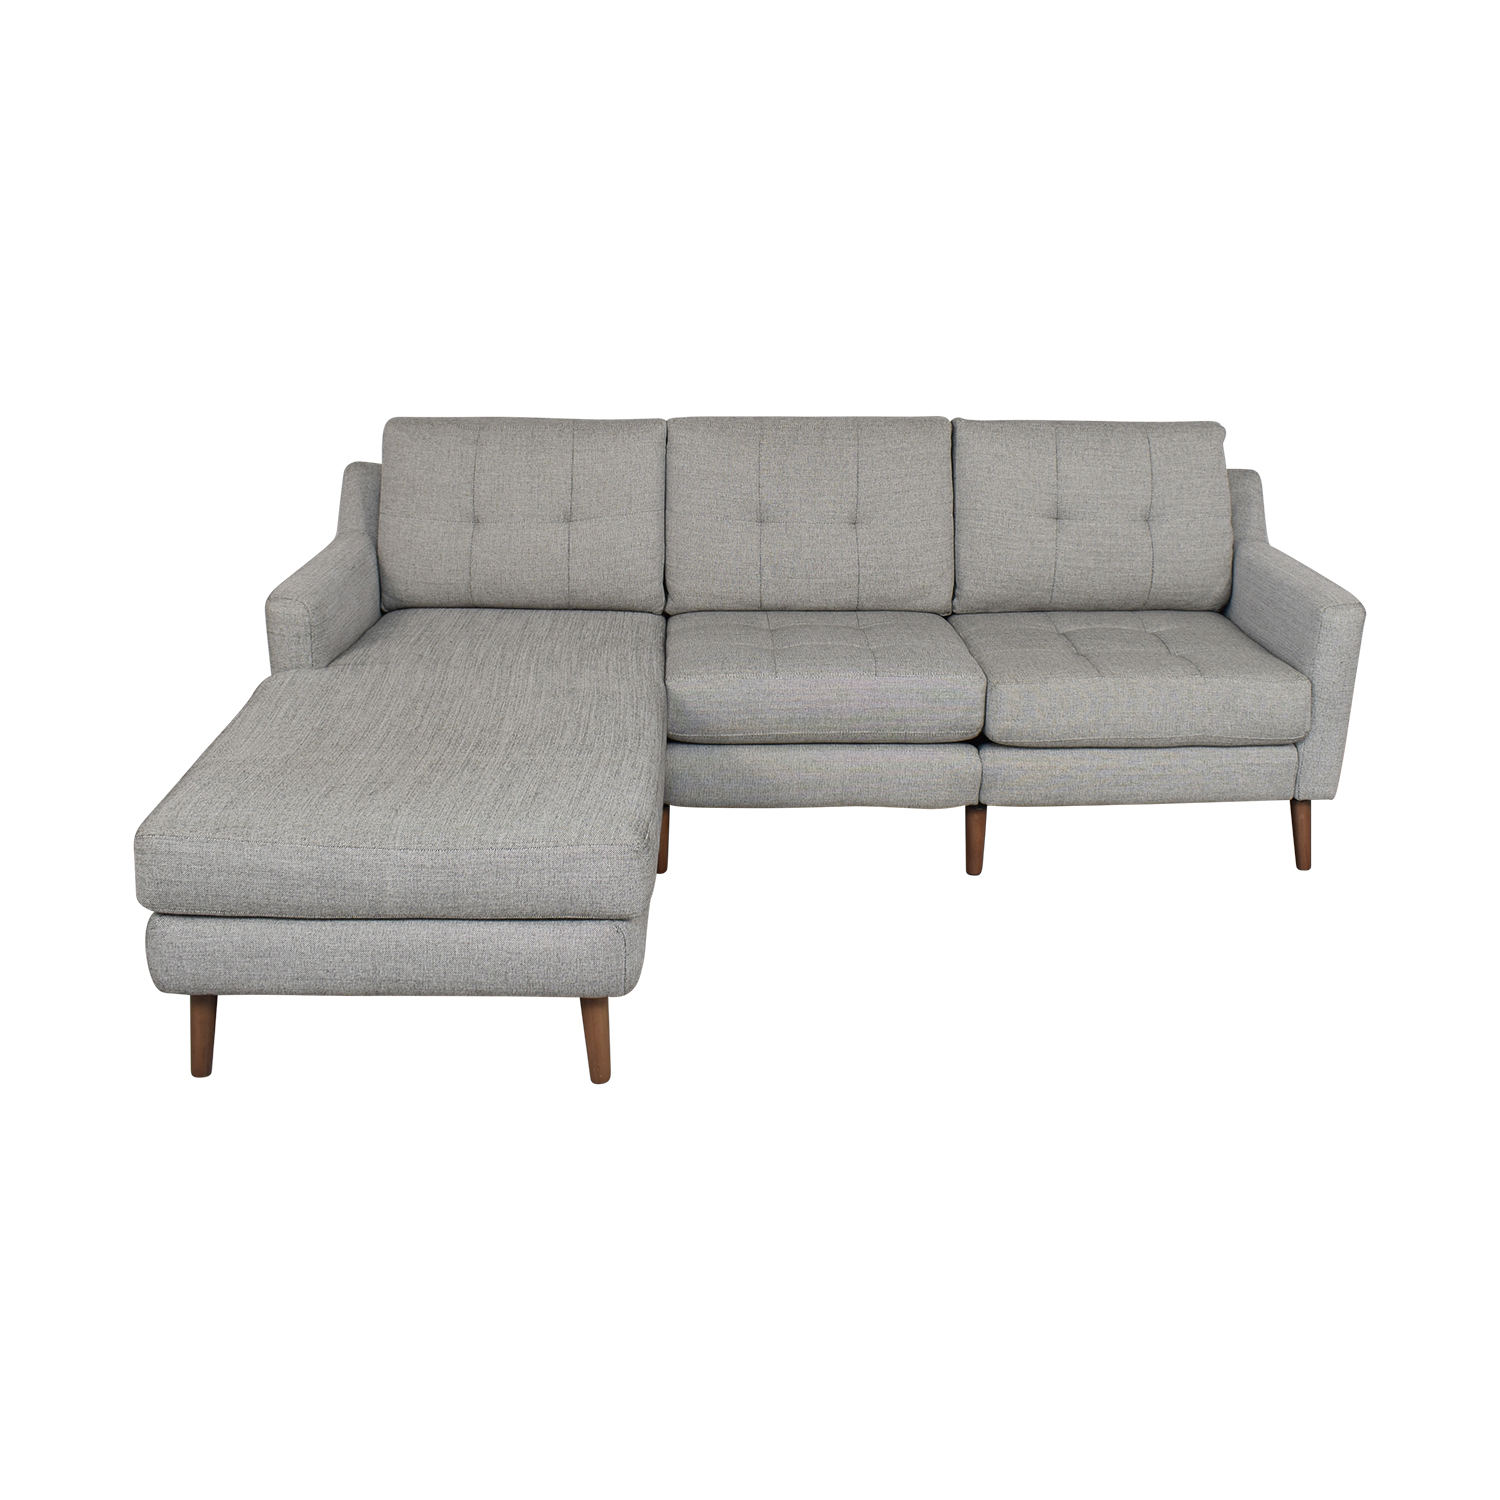 Burrow Burrow Nomad Sofa Sectional Sectionals